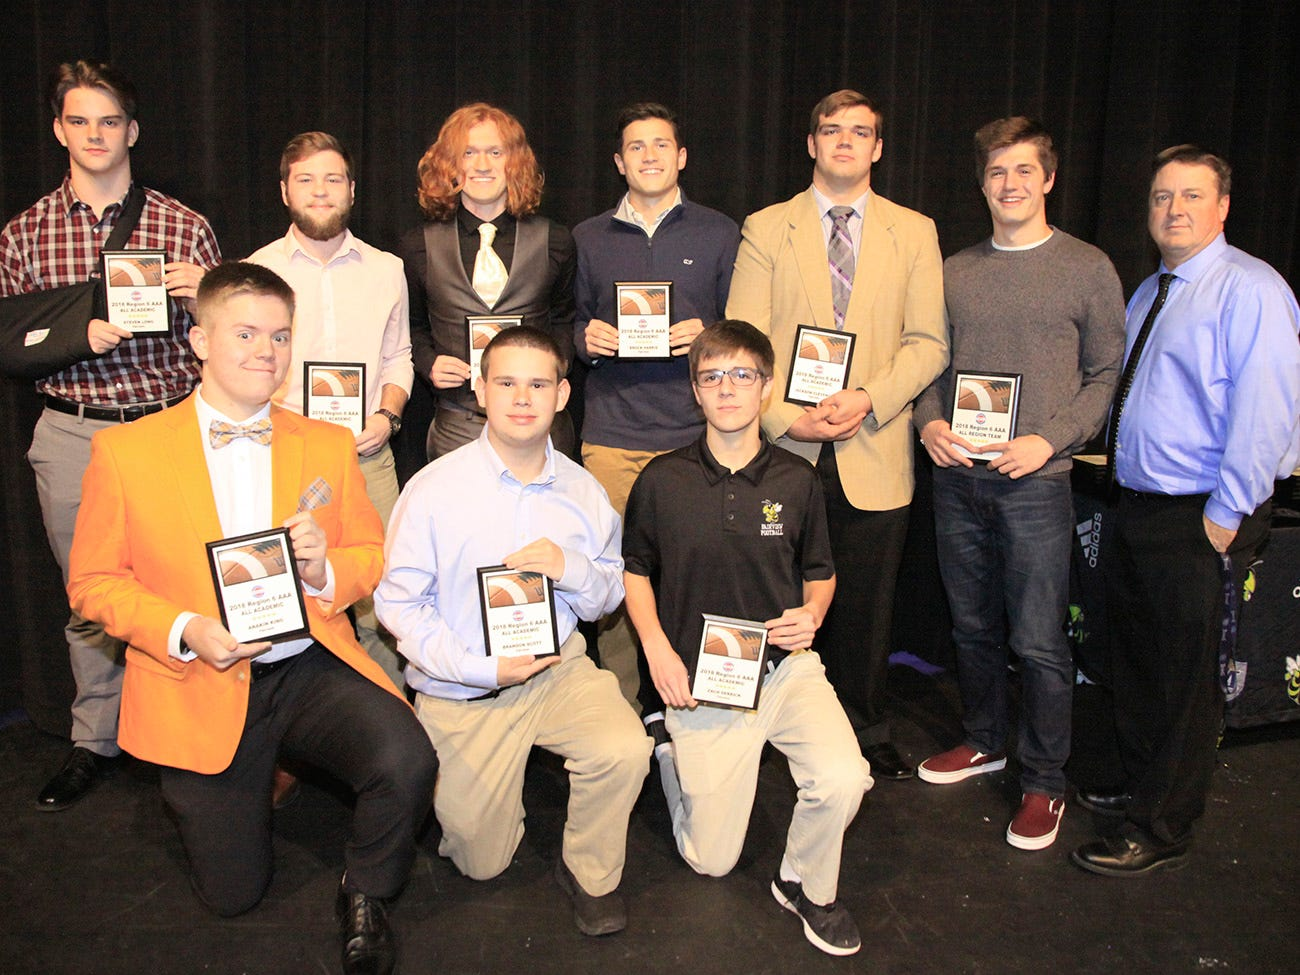 The 2018 Region 6 AAA, All Academic players from Fairview High School are (front l to r) Anakin King, Brandon Scott, Zach Derrick; (back) Steve Long,  Jared Hudlow , Skyler Wilson, Brock Harris, Jackson Clevenger, Spencer Flake, and Coach Chris Hughes.